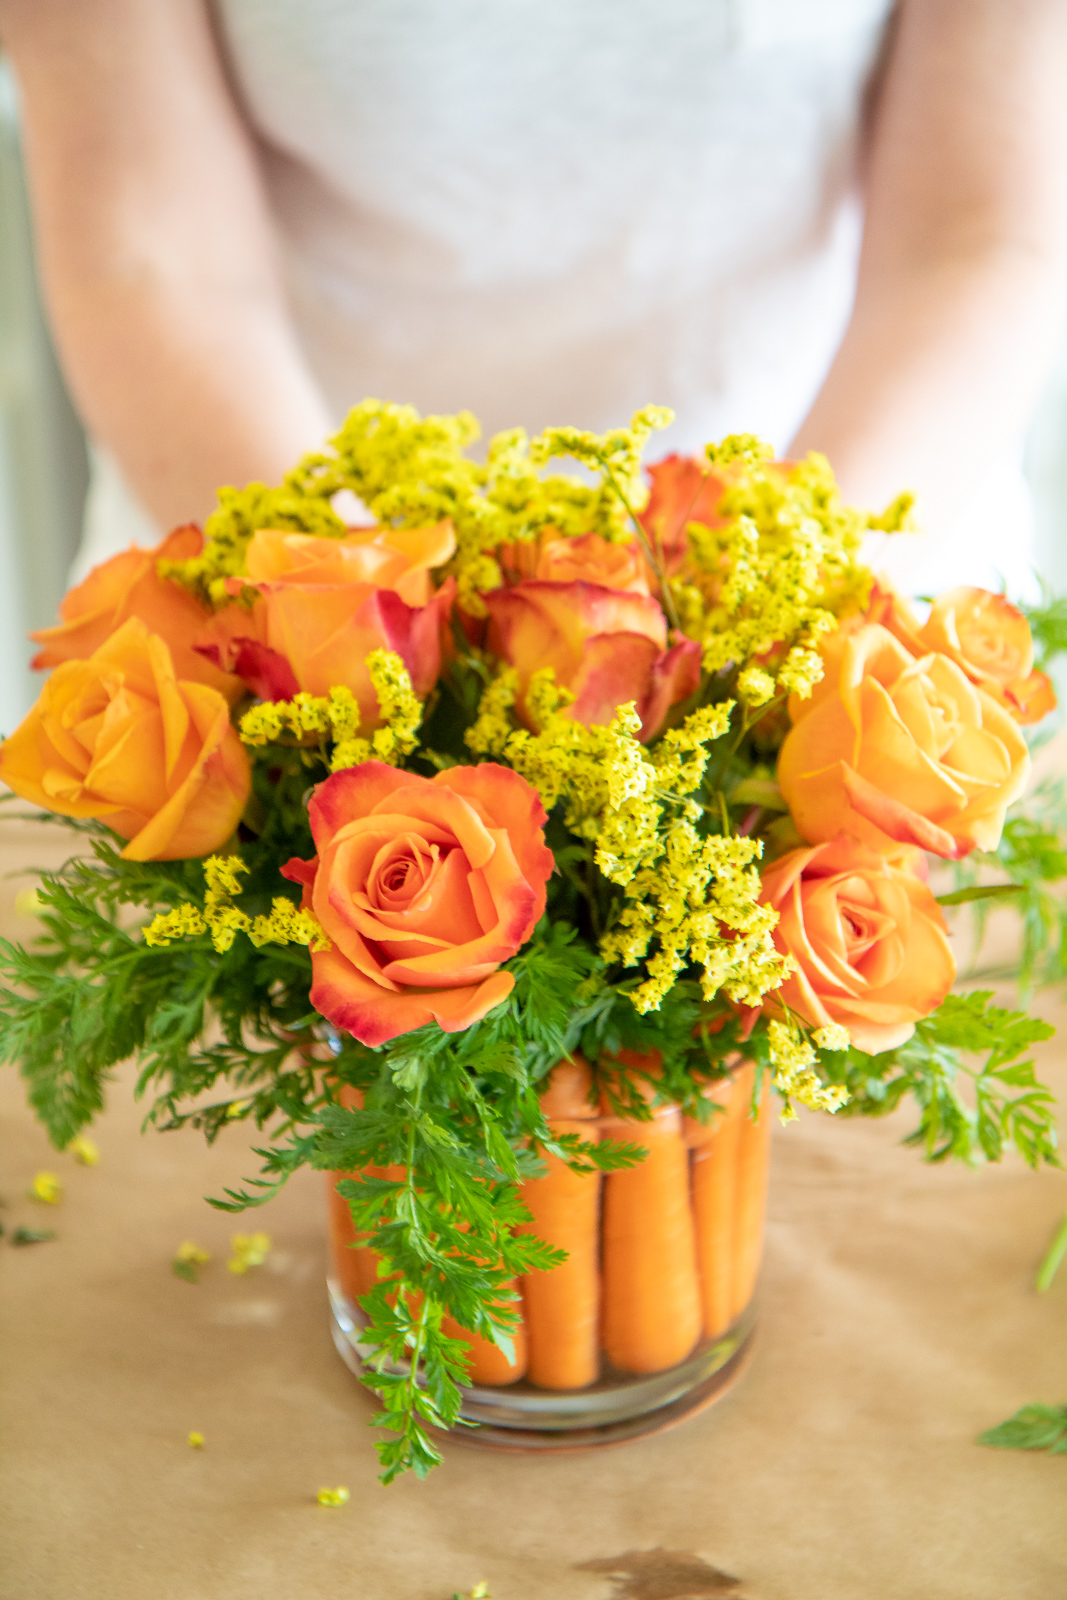 How to use carrots in a flower centerpiece